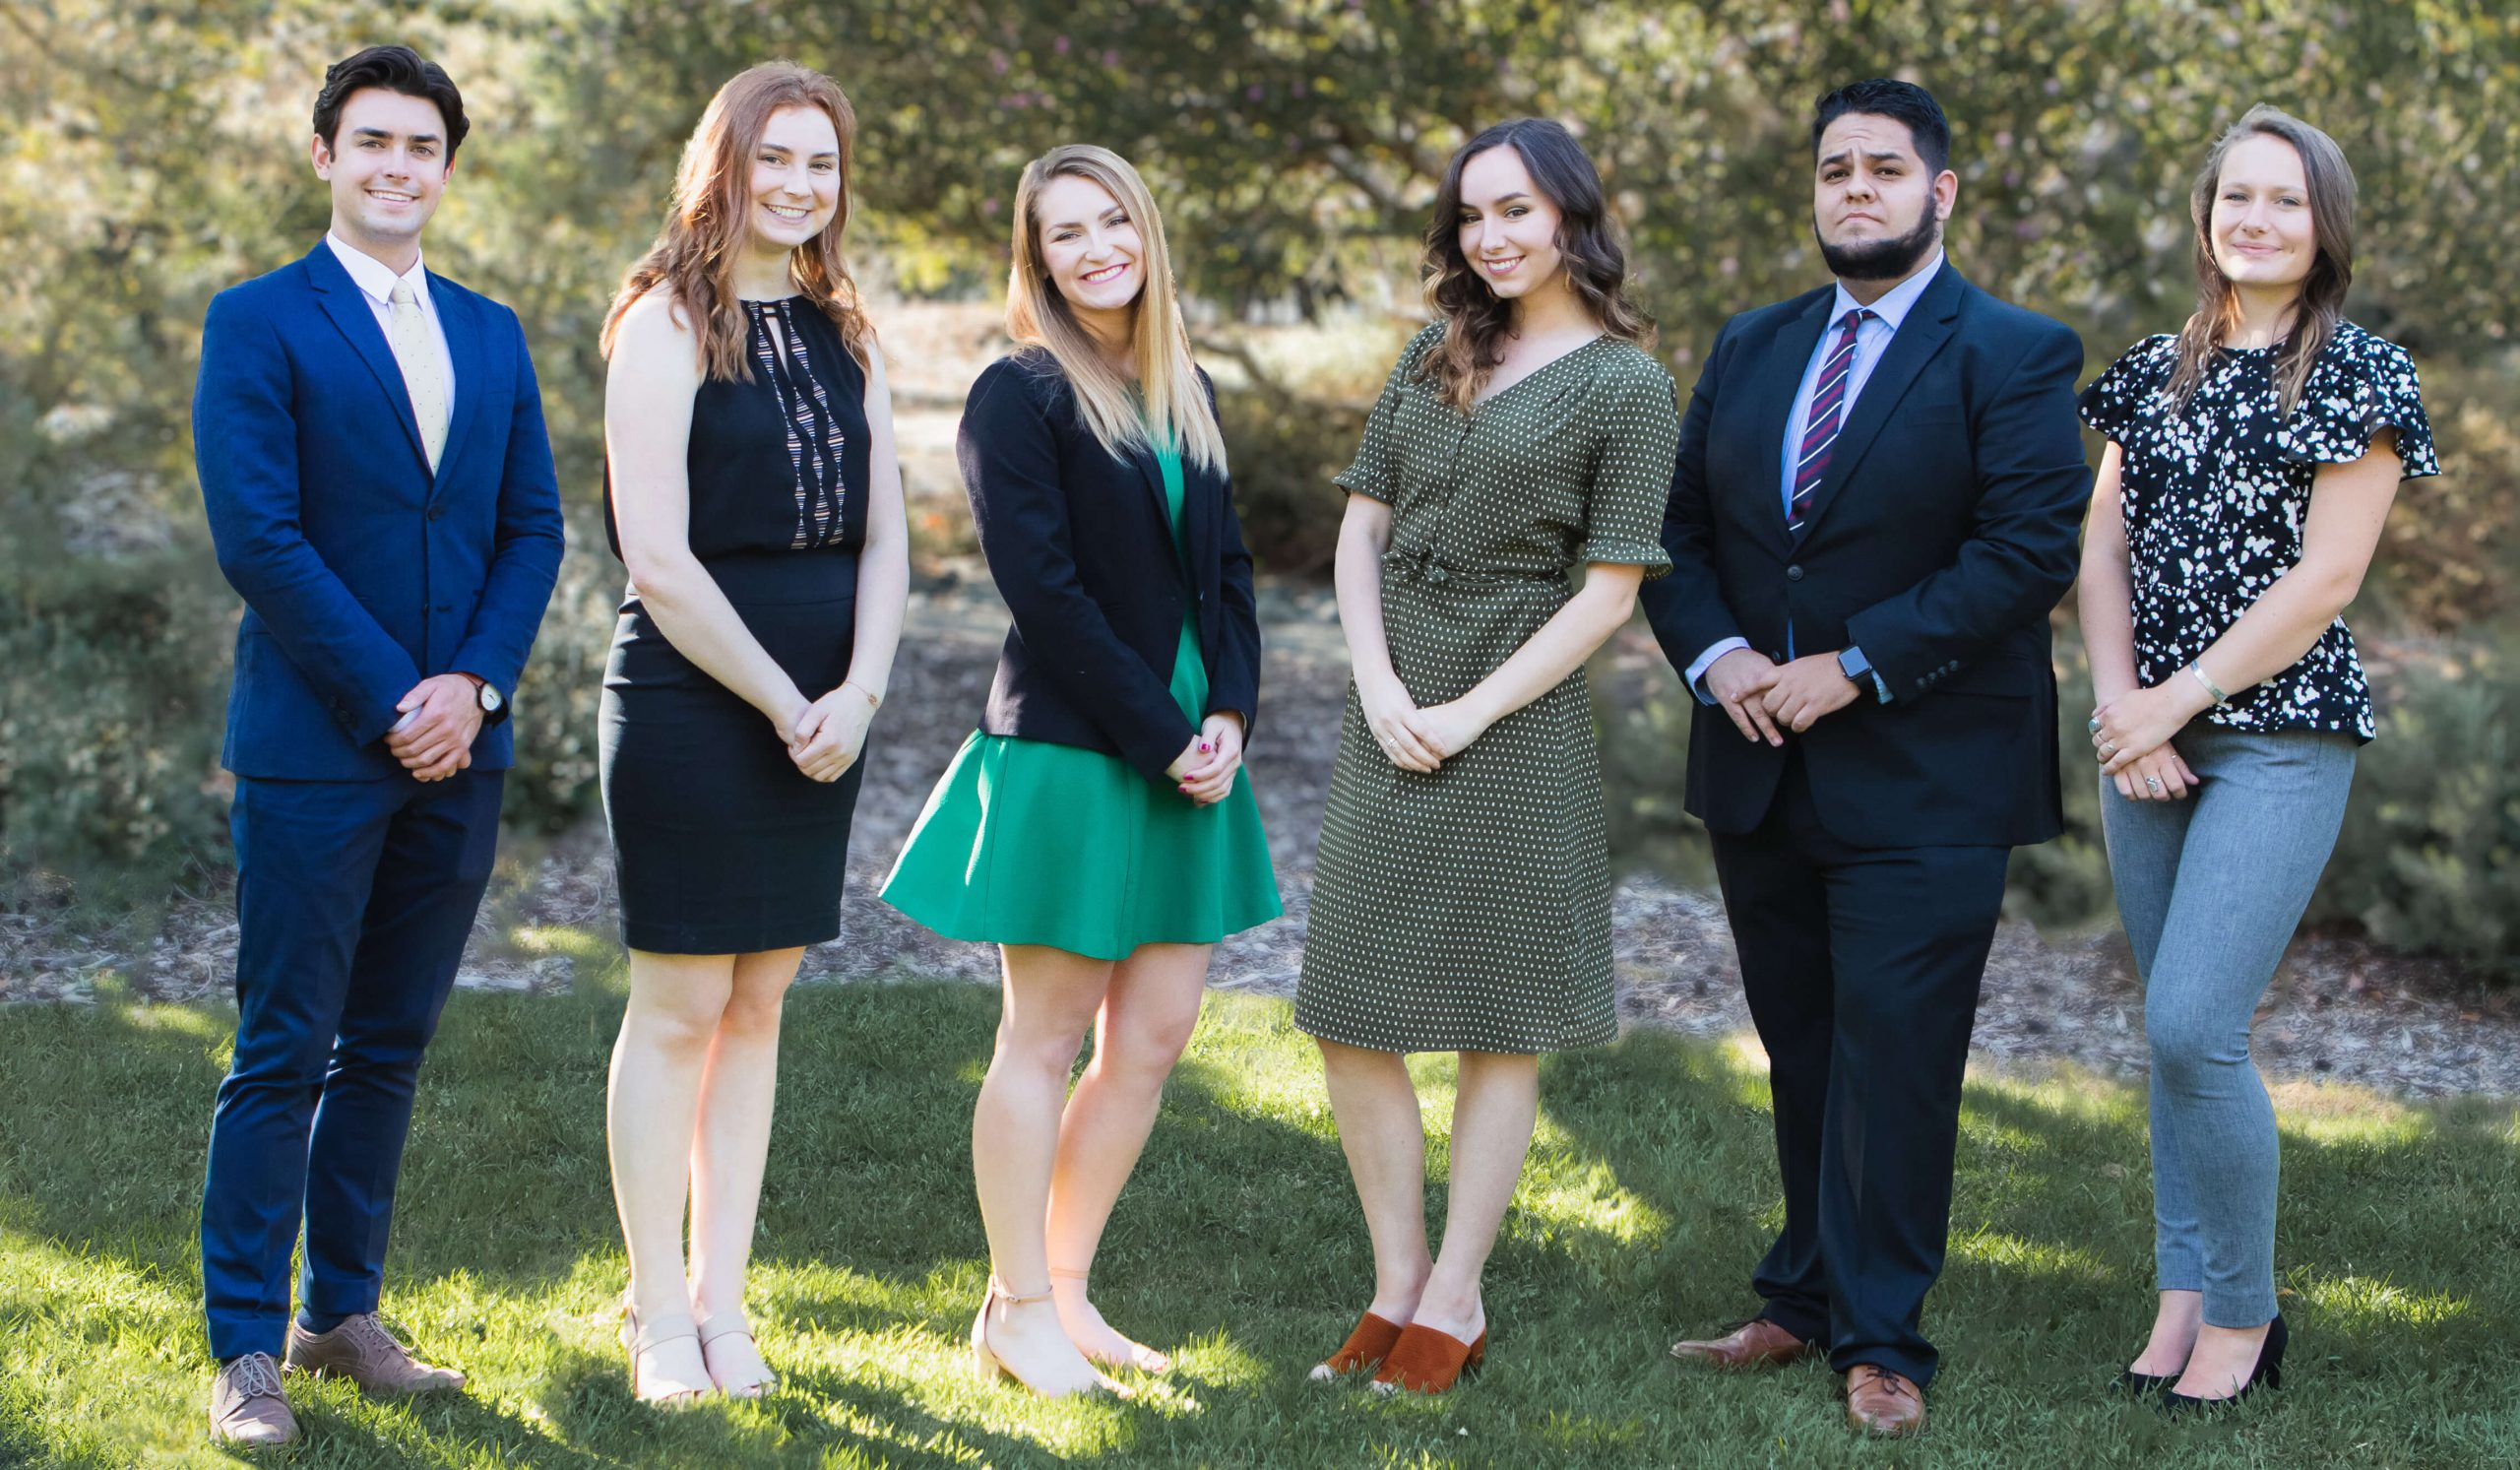 Student Government Leadership Team